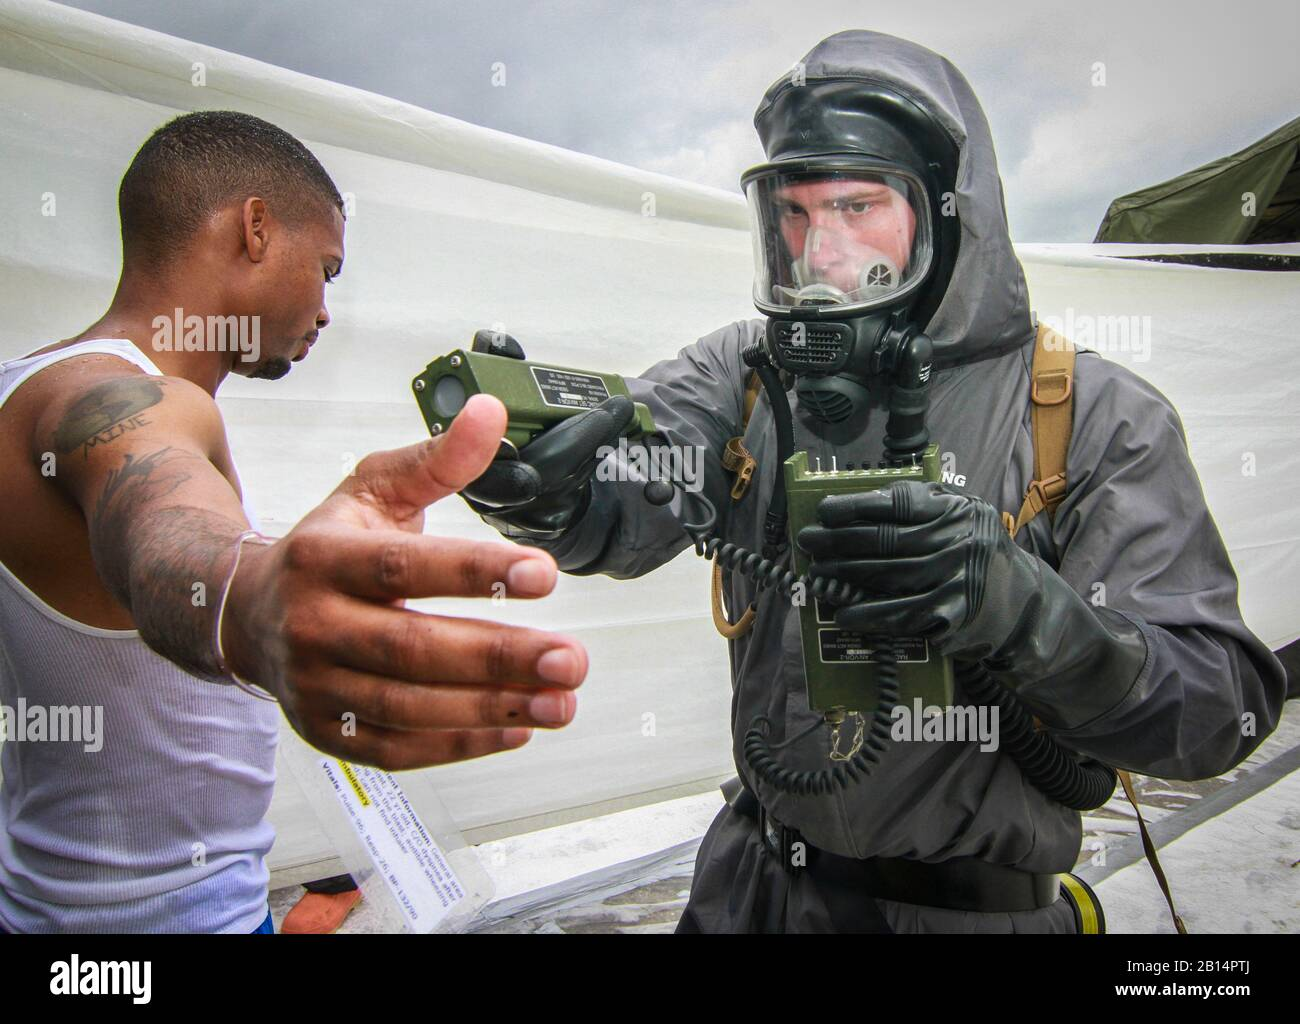 U.S. Army Spc. Nicholas Threatte, a chemical decontamination specialist and native of Darlington, South Carolina, assigned to the Army Reserve 413th Chemical Company, 457th Chemical Battalion, 415th Chemical Brigade, Task Force 76, checks radiation levels on a simulated victim of a chemical attack during a training exercise at Homestead Miami Speedway, Homestead, Florida, Jan. 24, 2019, as part of Operation Homestead 19. Nearly 300 Army Reserve Soldiers assigned to Task Force 76 along with more than 100 personnel from the Miami-Dade Fire Department and several other civilian agencies spent the Stock Photo